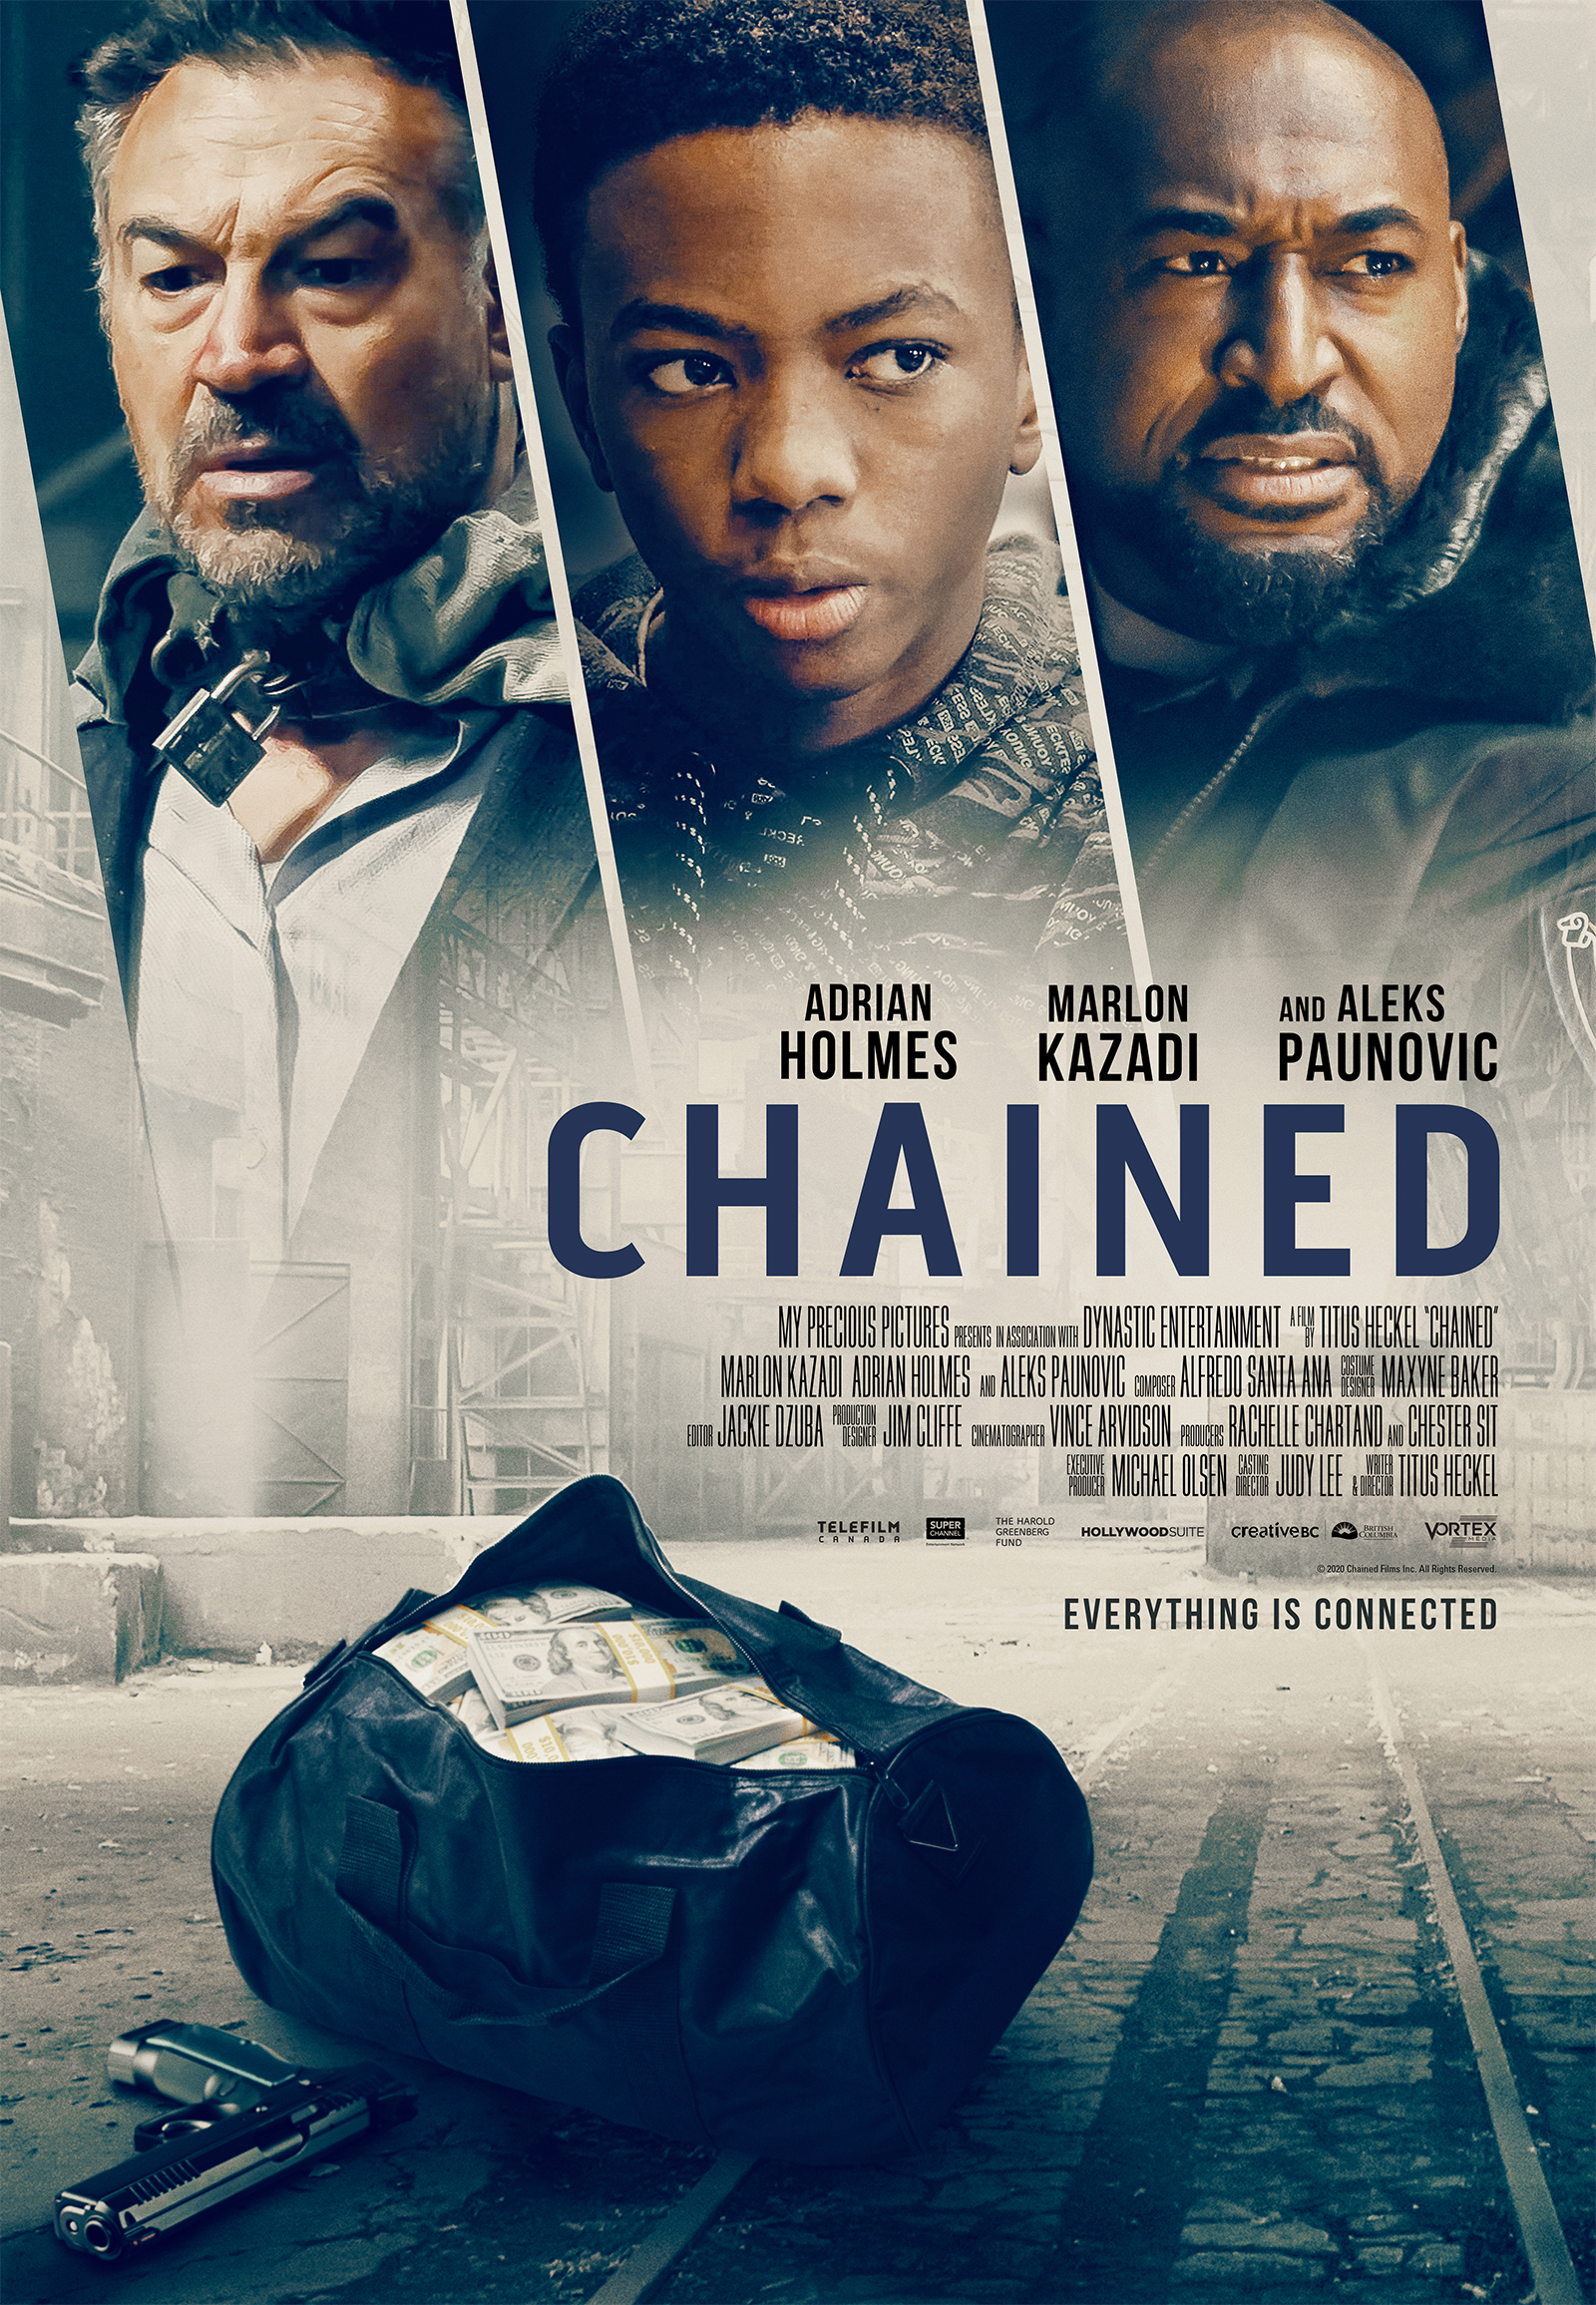 Chained hd on soap2day